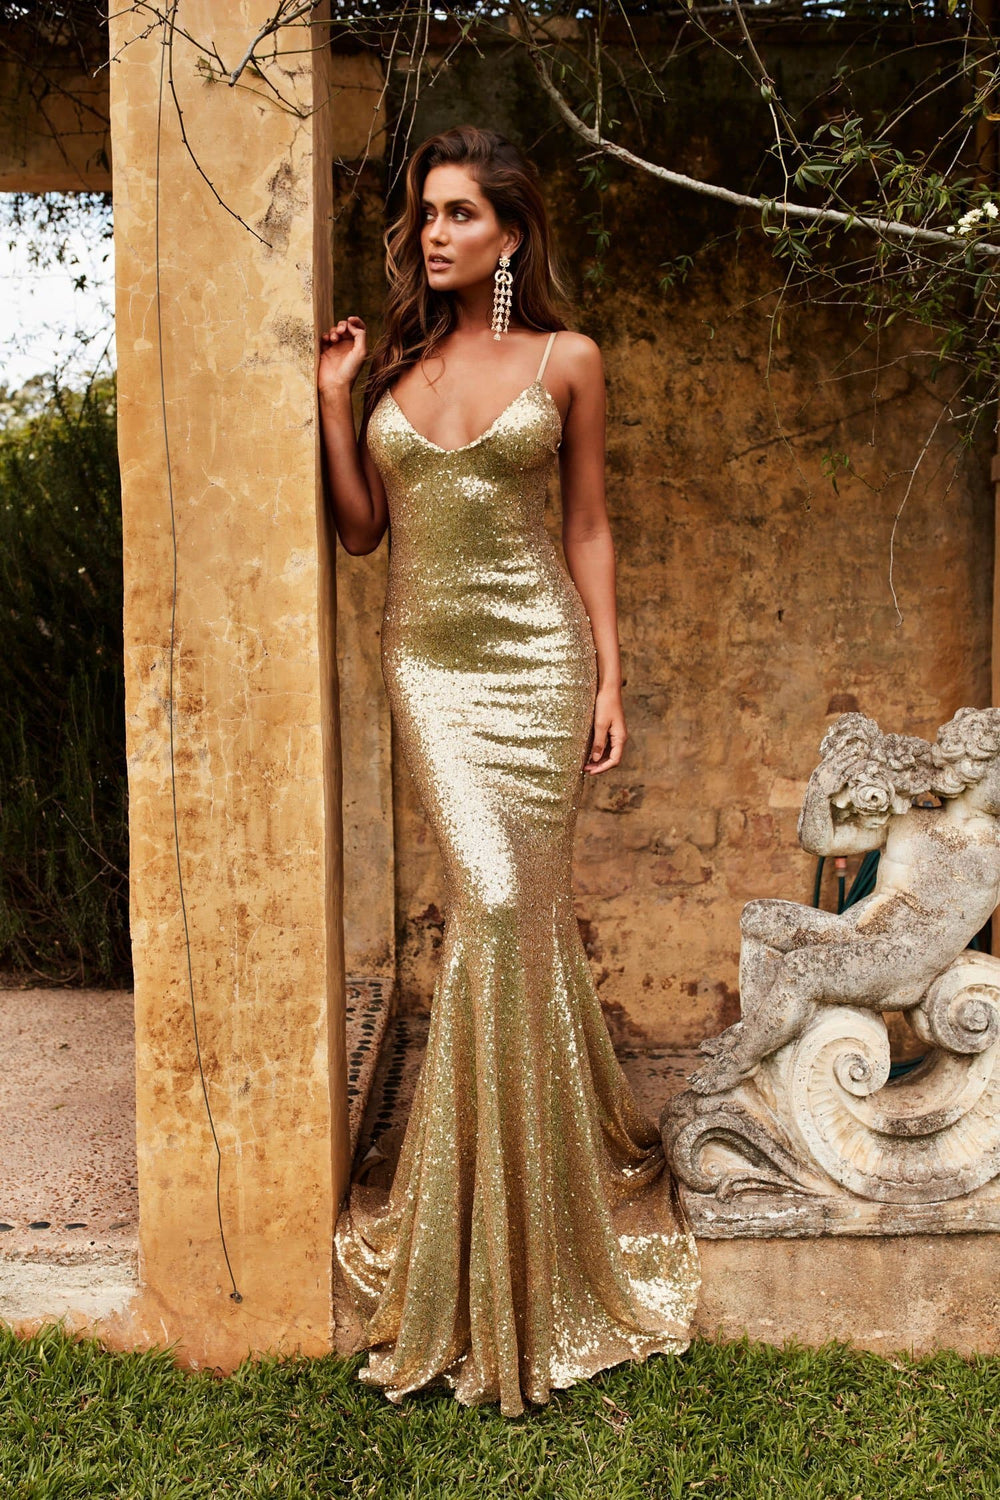 Yassmine Luxe - Gold Sequin Backless Gown with Mermaid Train